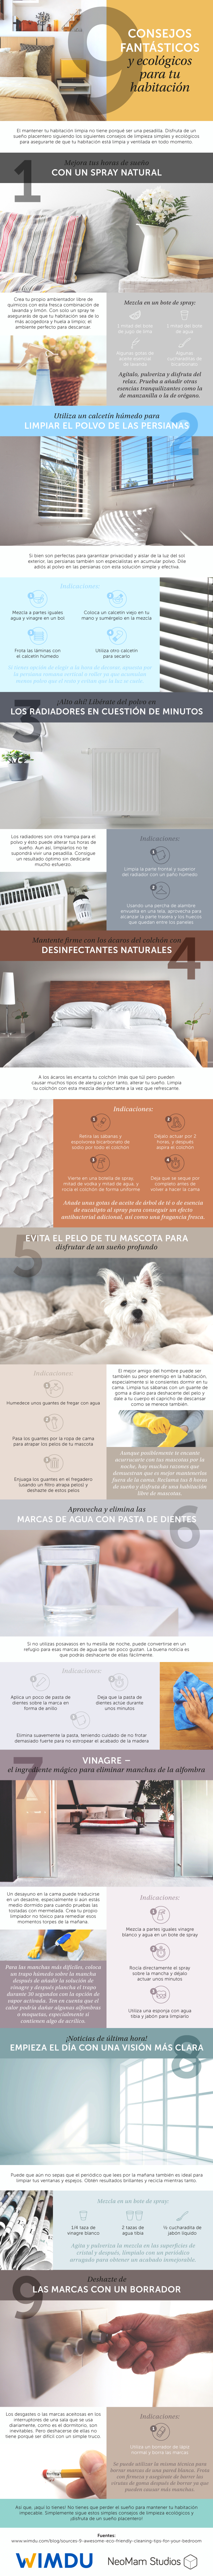 9-awesome-eco-friendly-cleaning-tips-for-your-bedroom-SPANISH